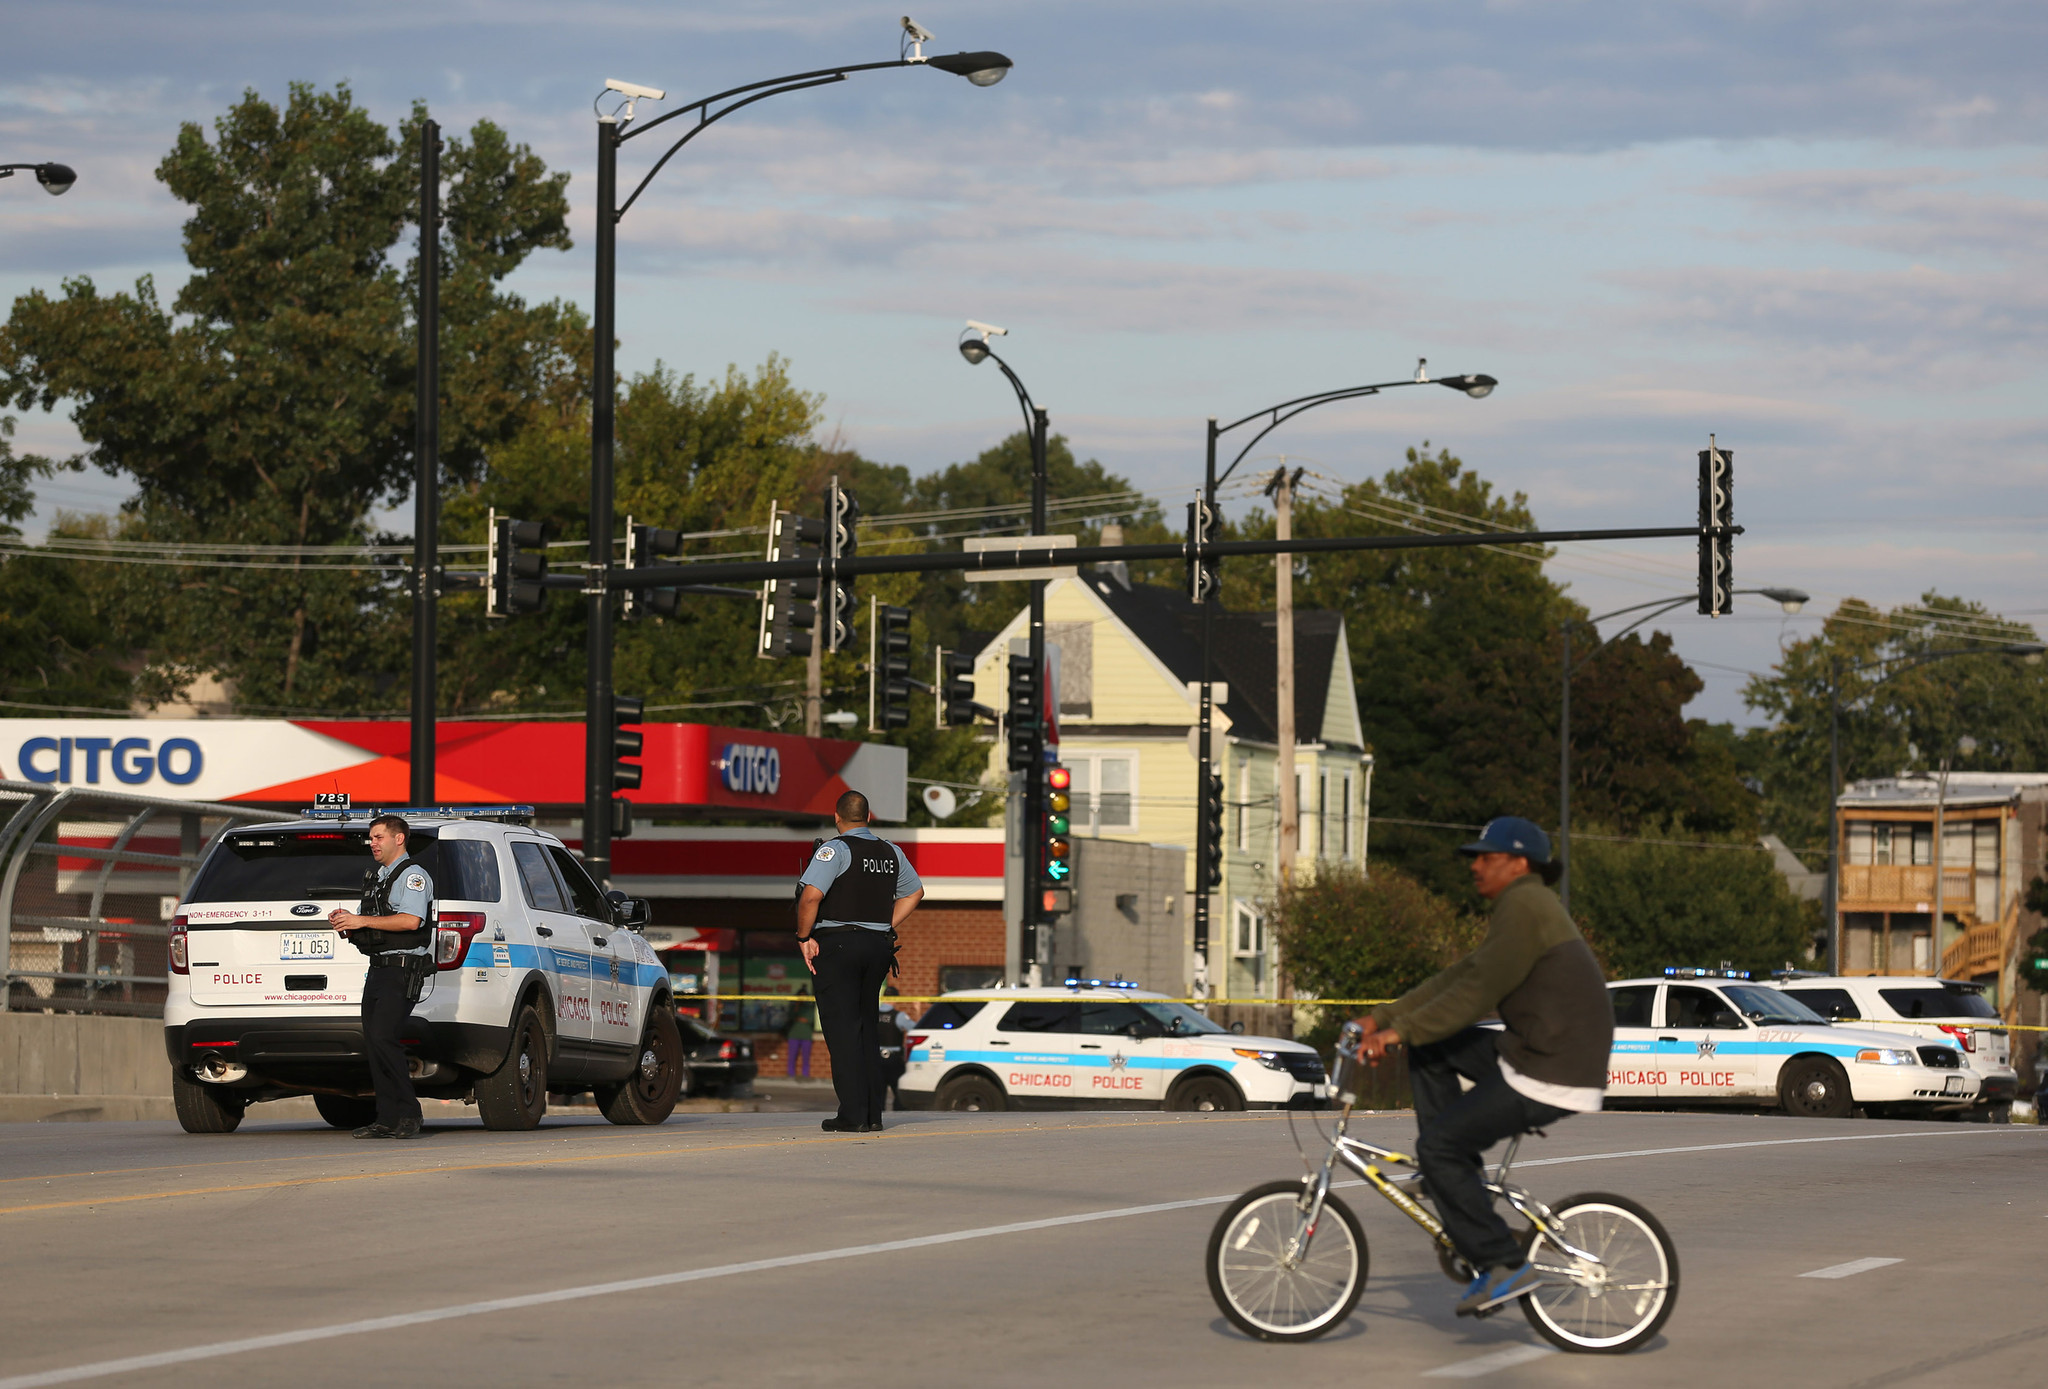 Teen boy critically wounded, girl shot in South Side attack among 8 wounded